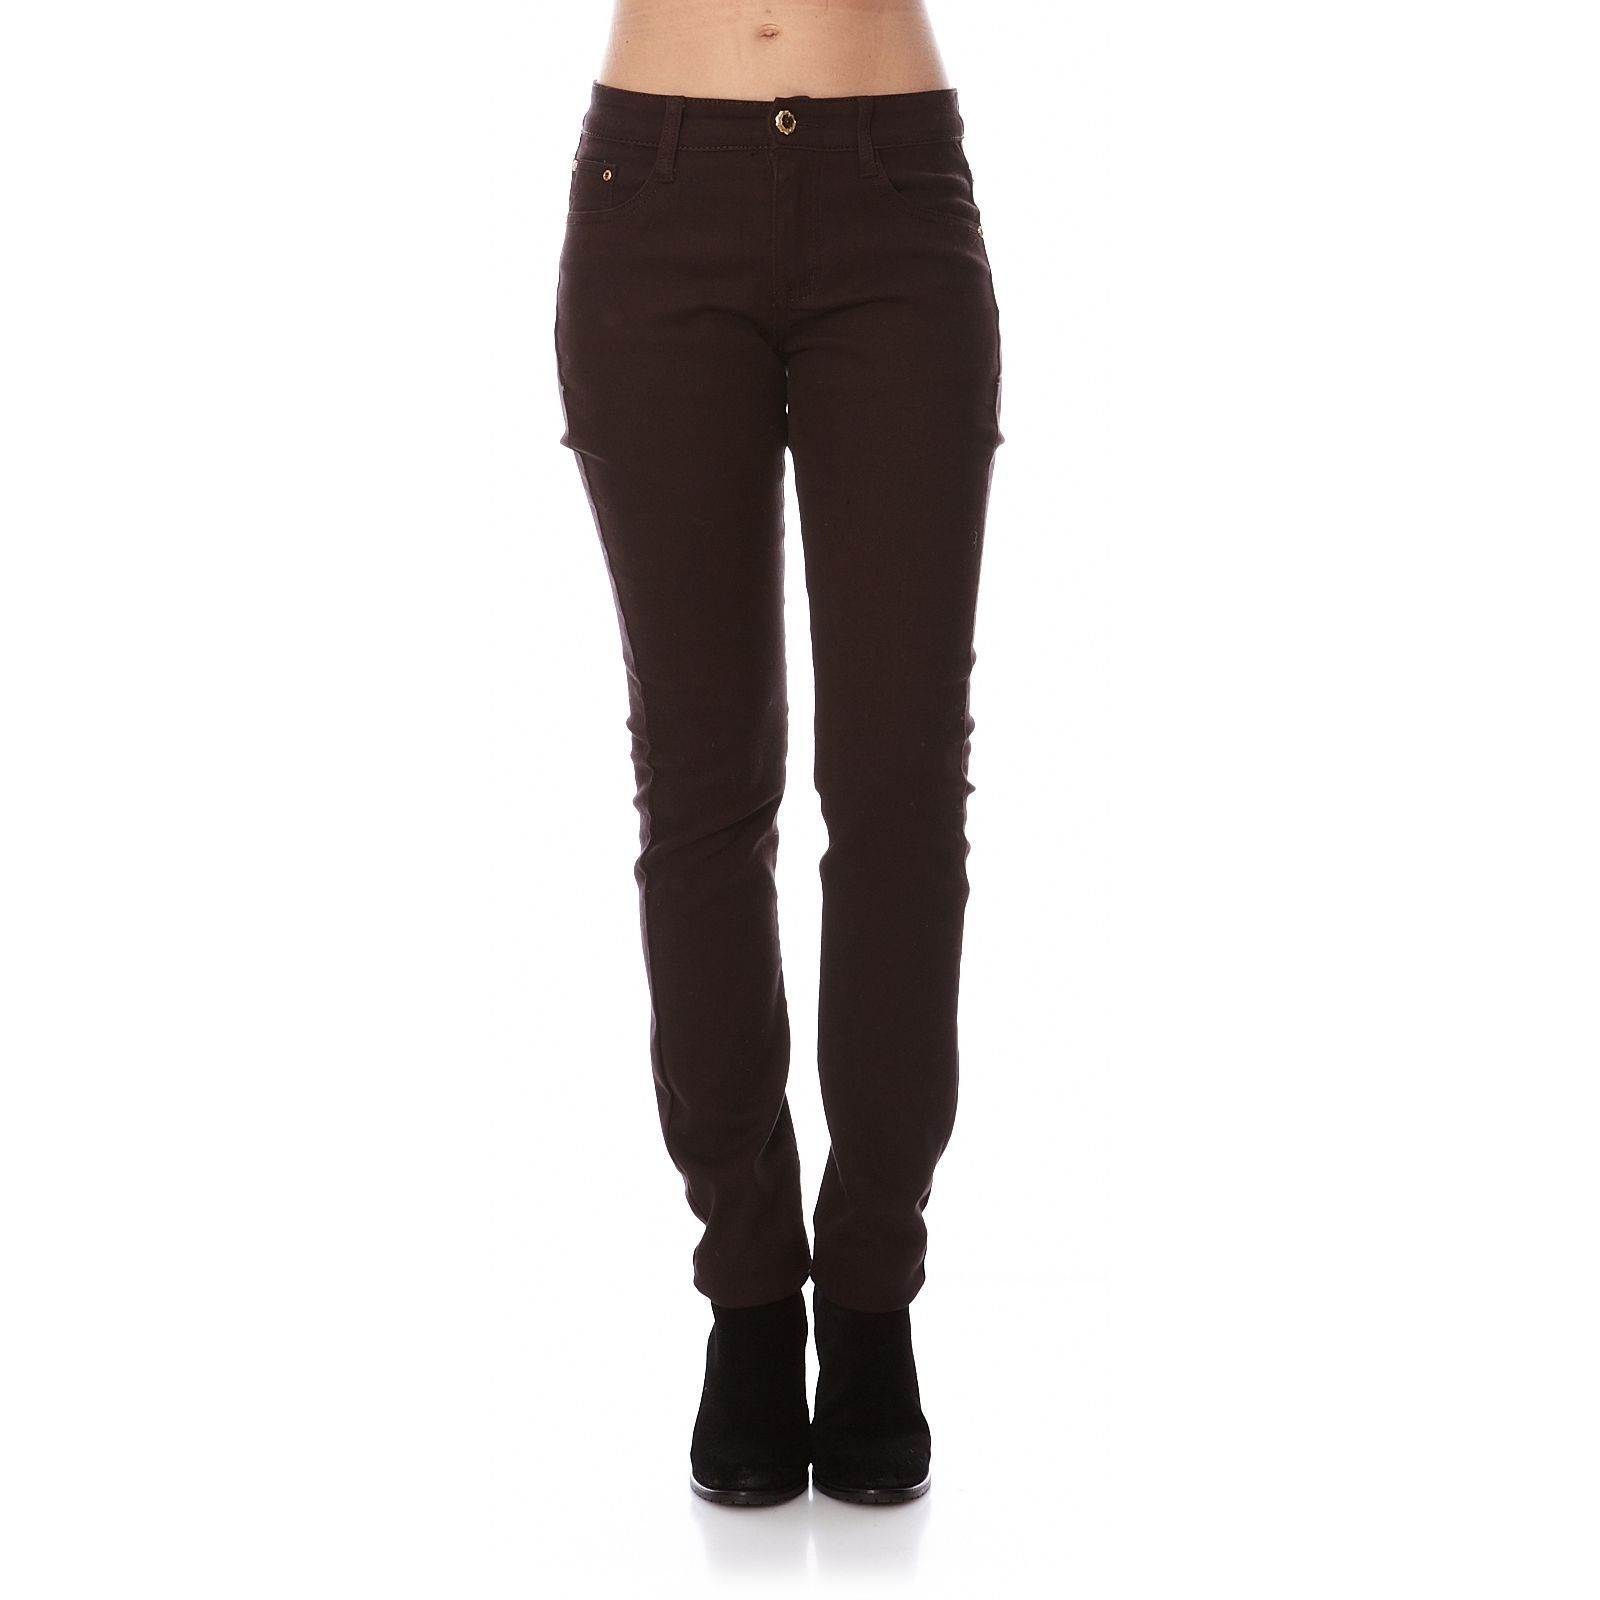 In�s de la Fressange Jeans Jean stretch marron